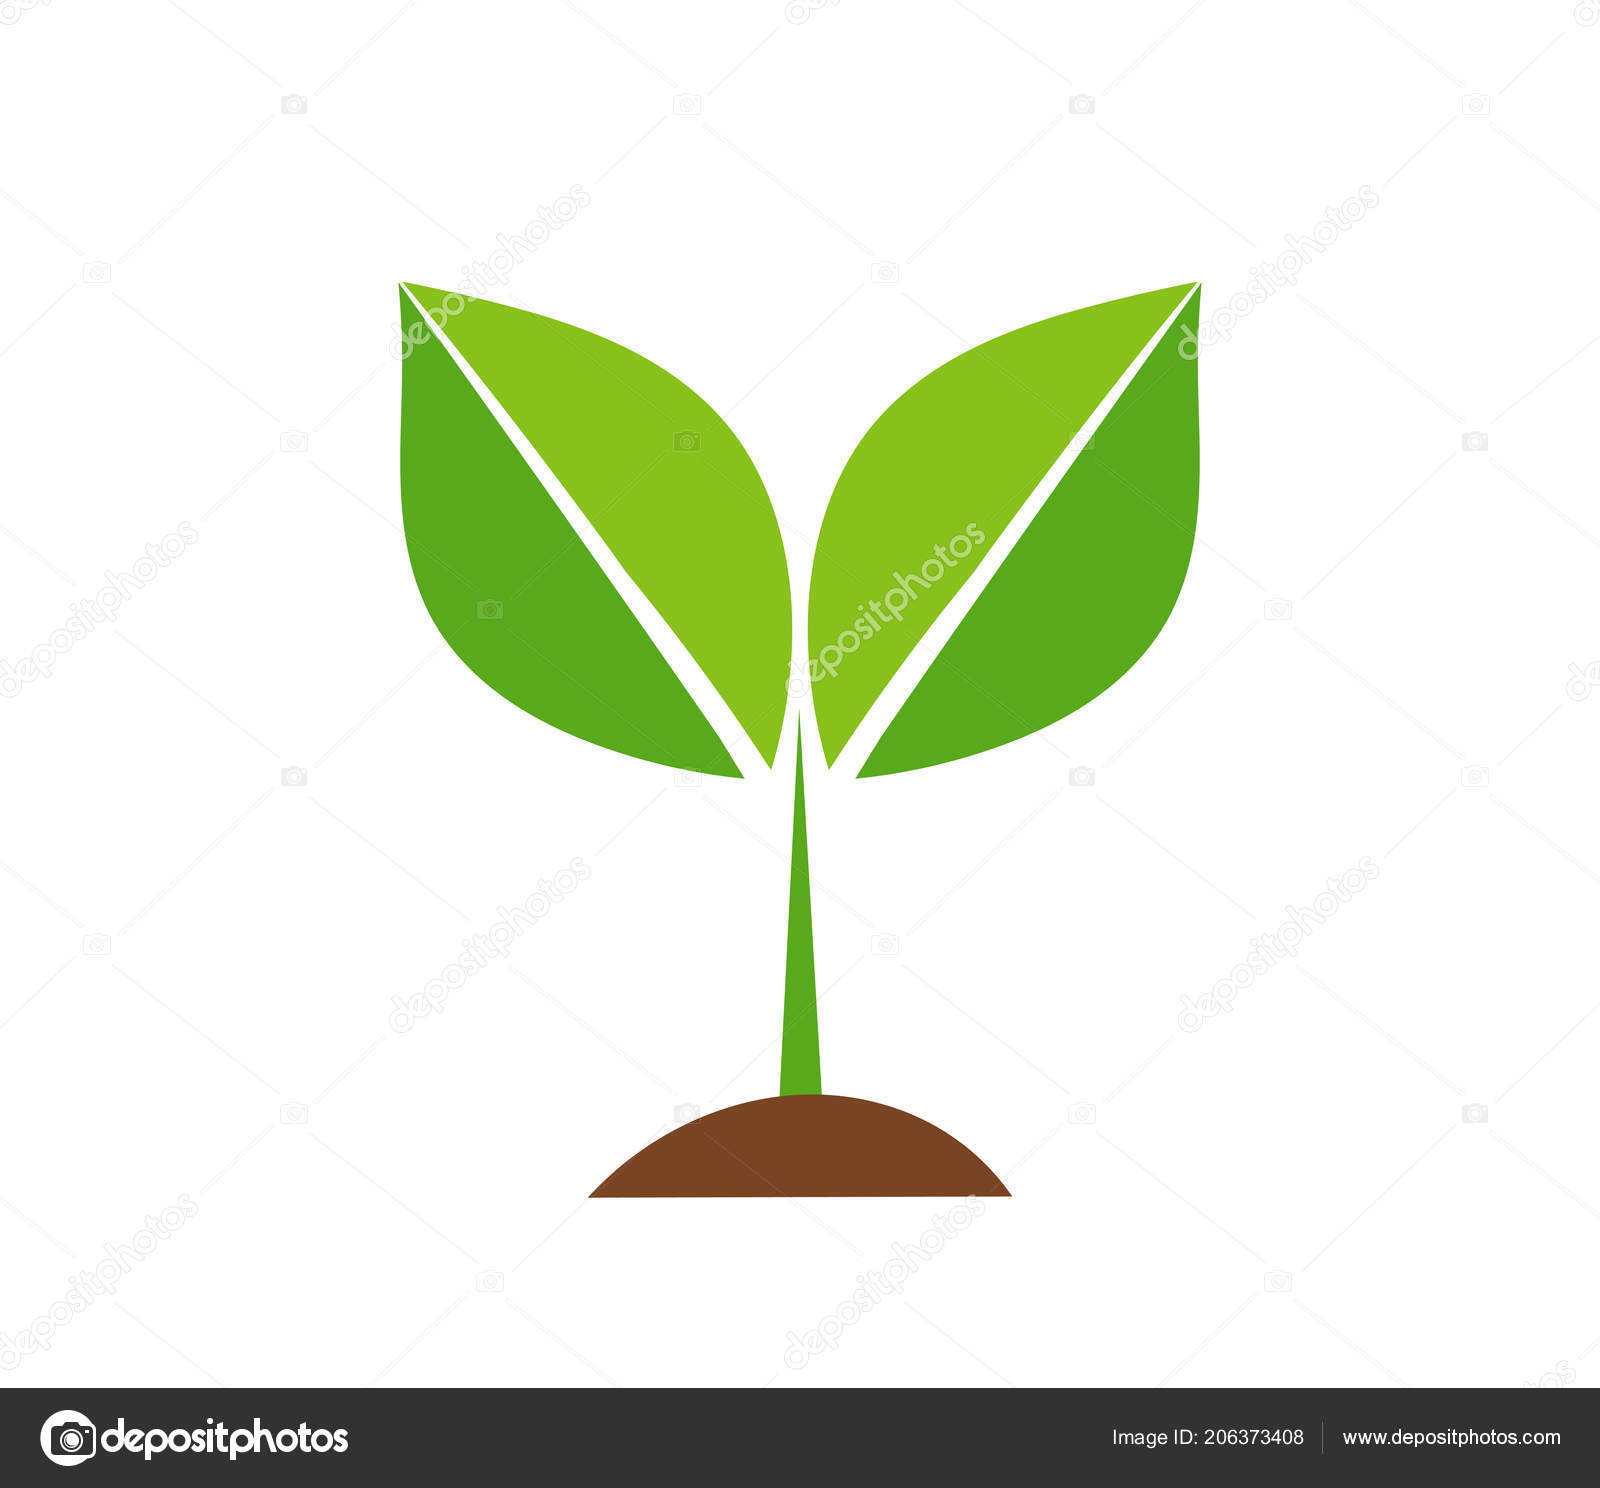 Spring Plant Icon Vector Illustration Stock Vector C Studiobarcelona 206373408 Plant tropical factory icon field icon drops plant water button plant abstract plant bending plant businessman icon grass icon. https depositphotos com 206373408 stock illustration spring plant icon vector illustration html